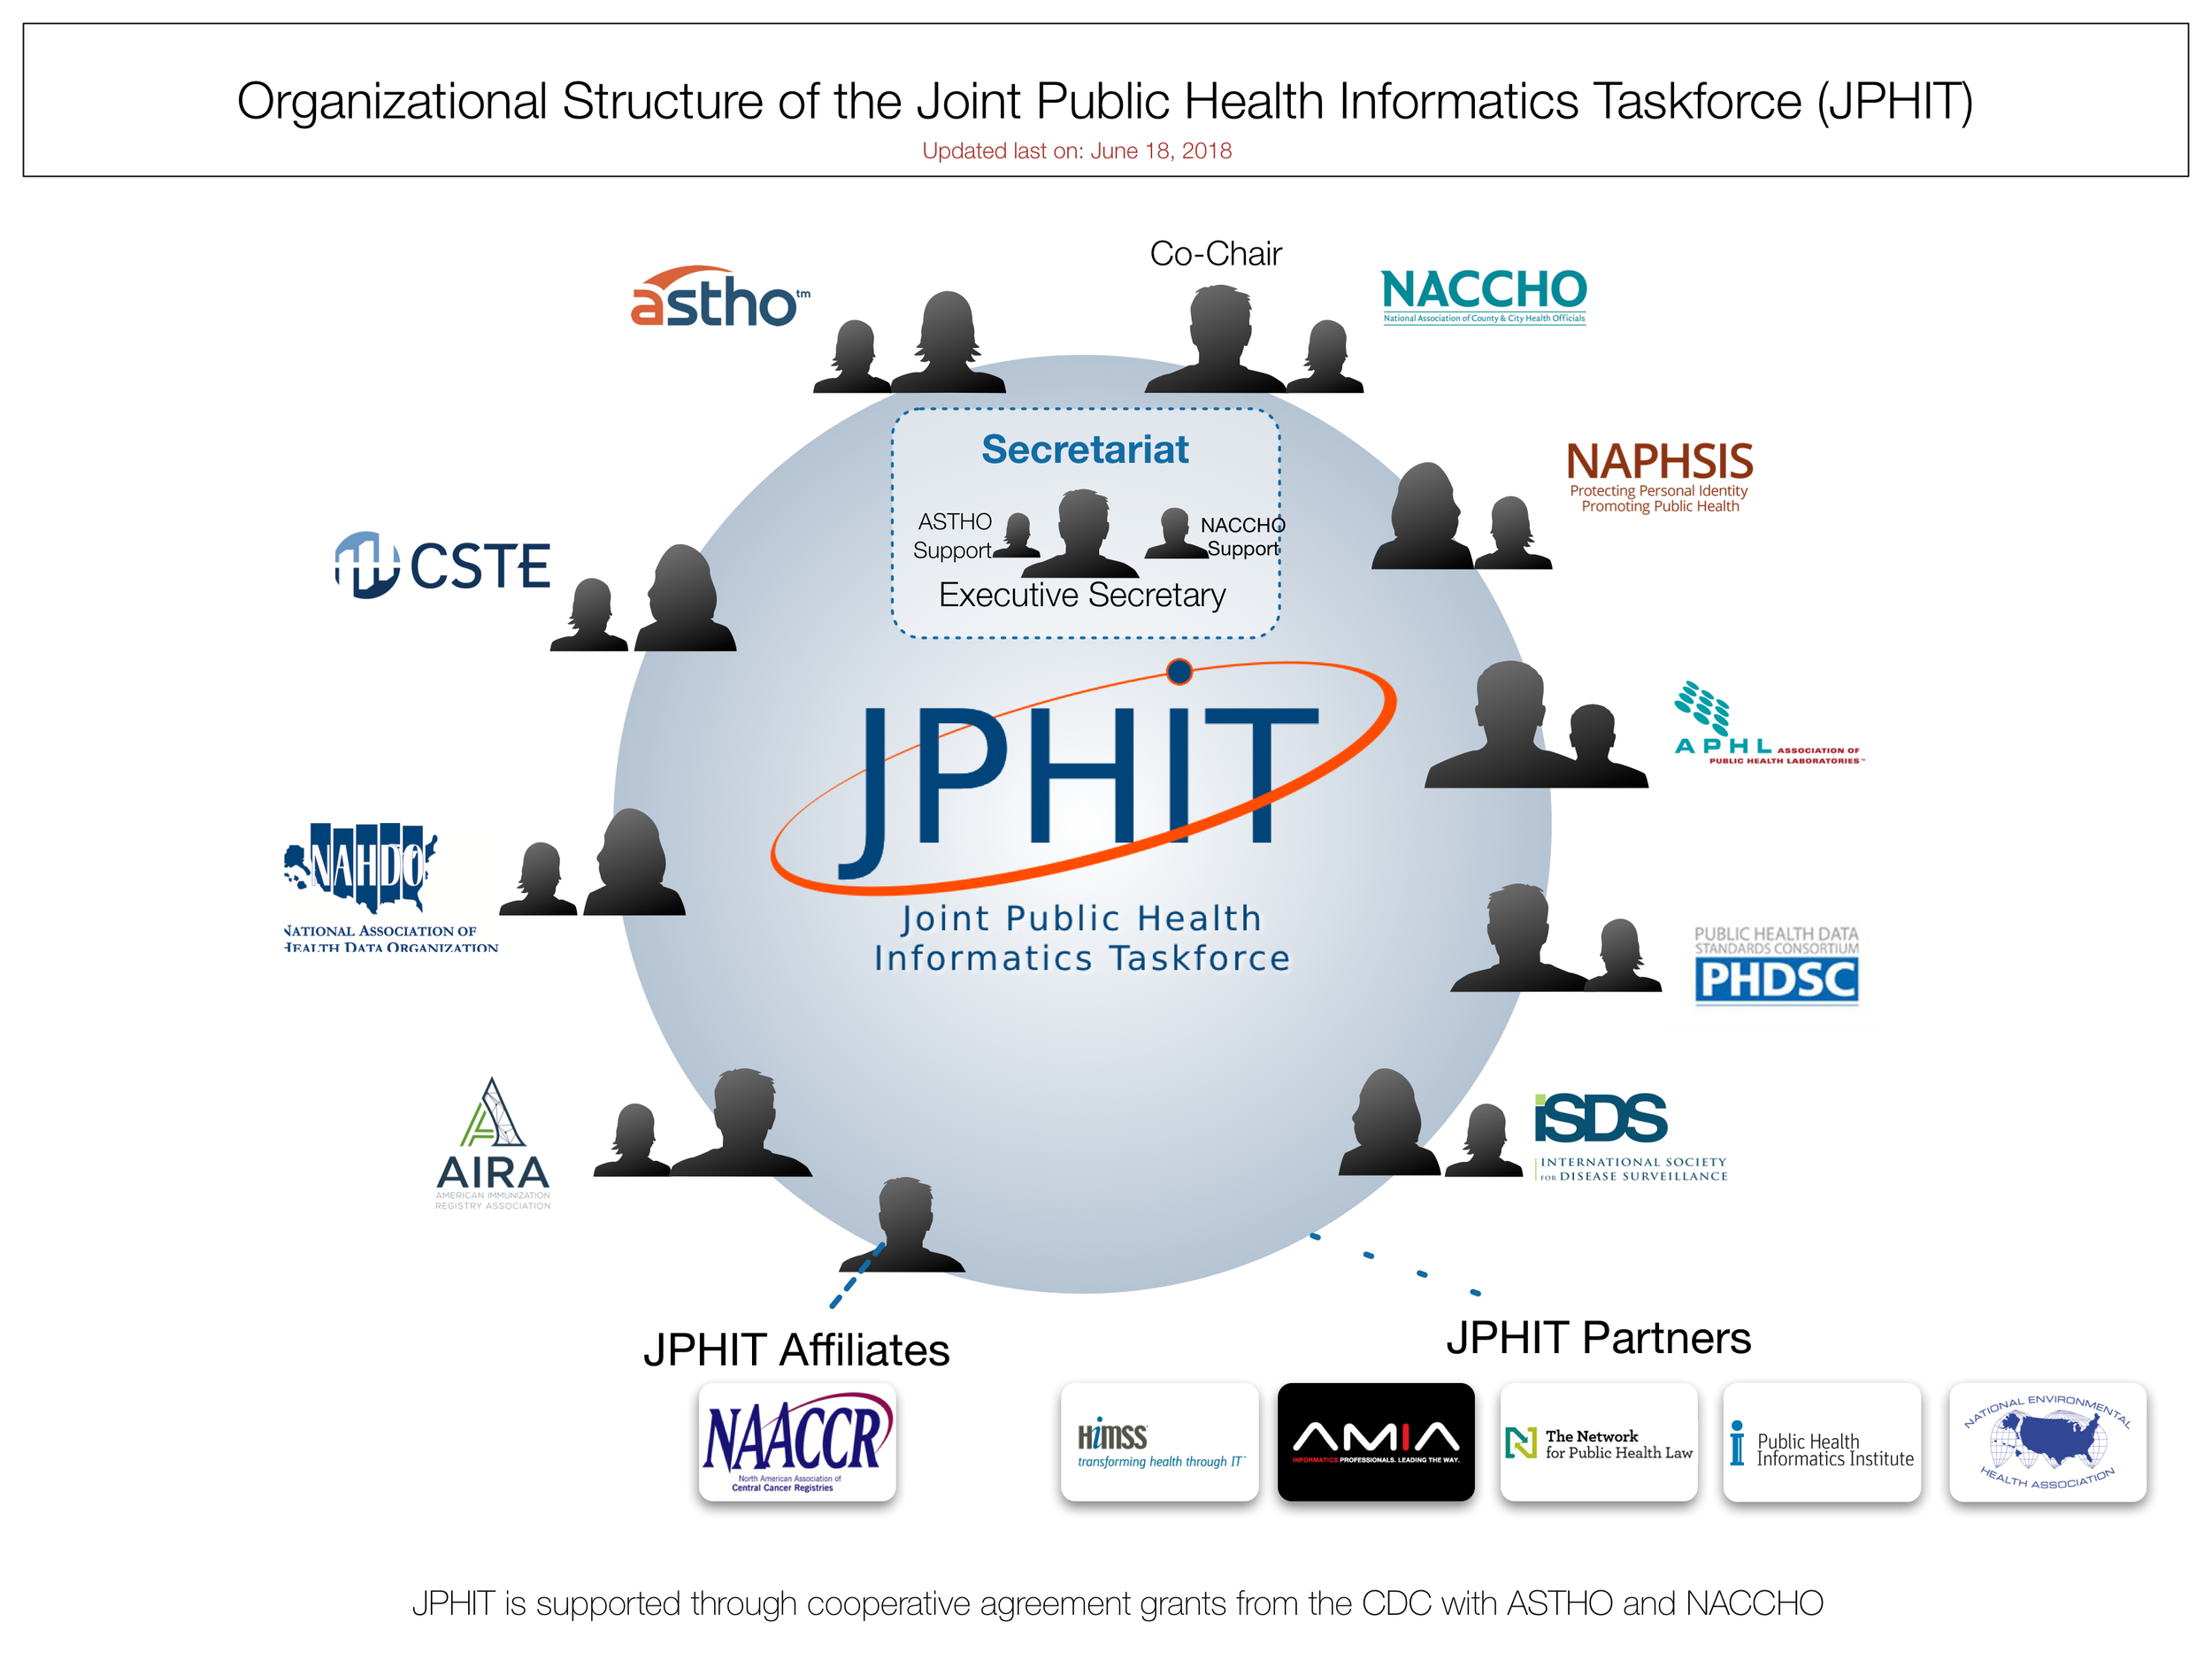 The organizational structure of the Joint Public Health Informatics Taskforce (June 2018).